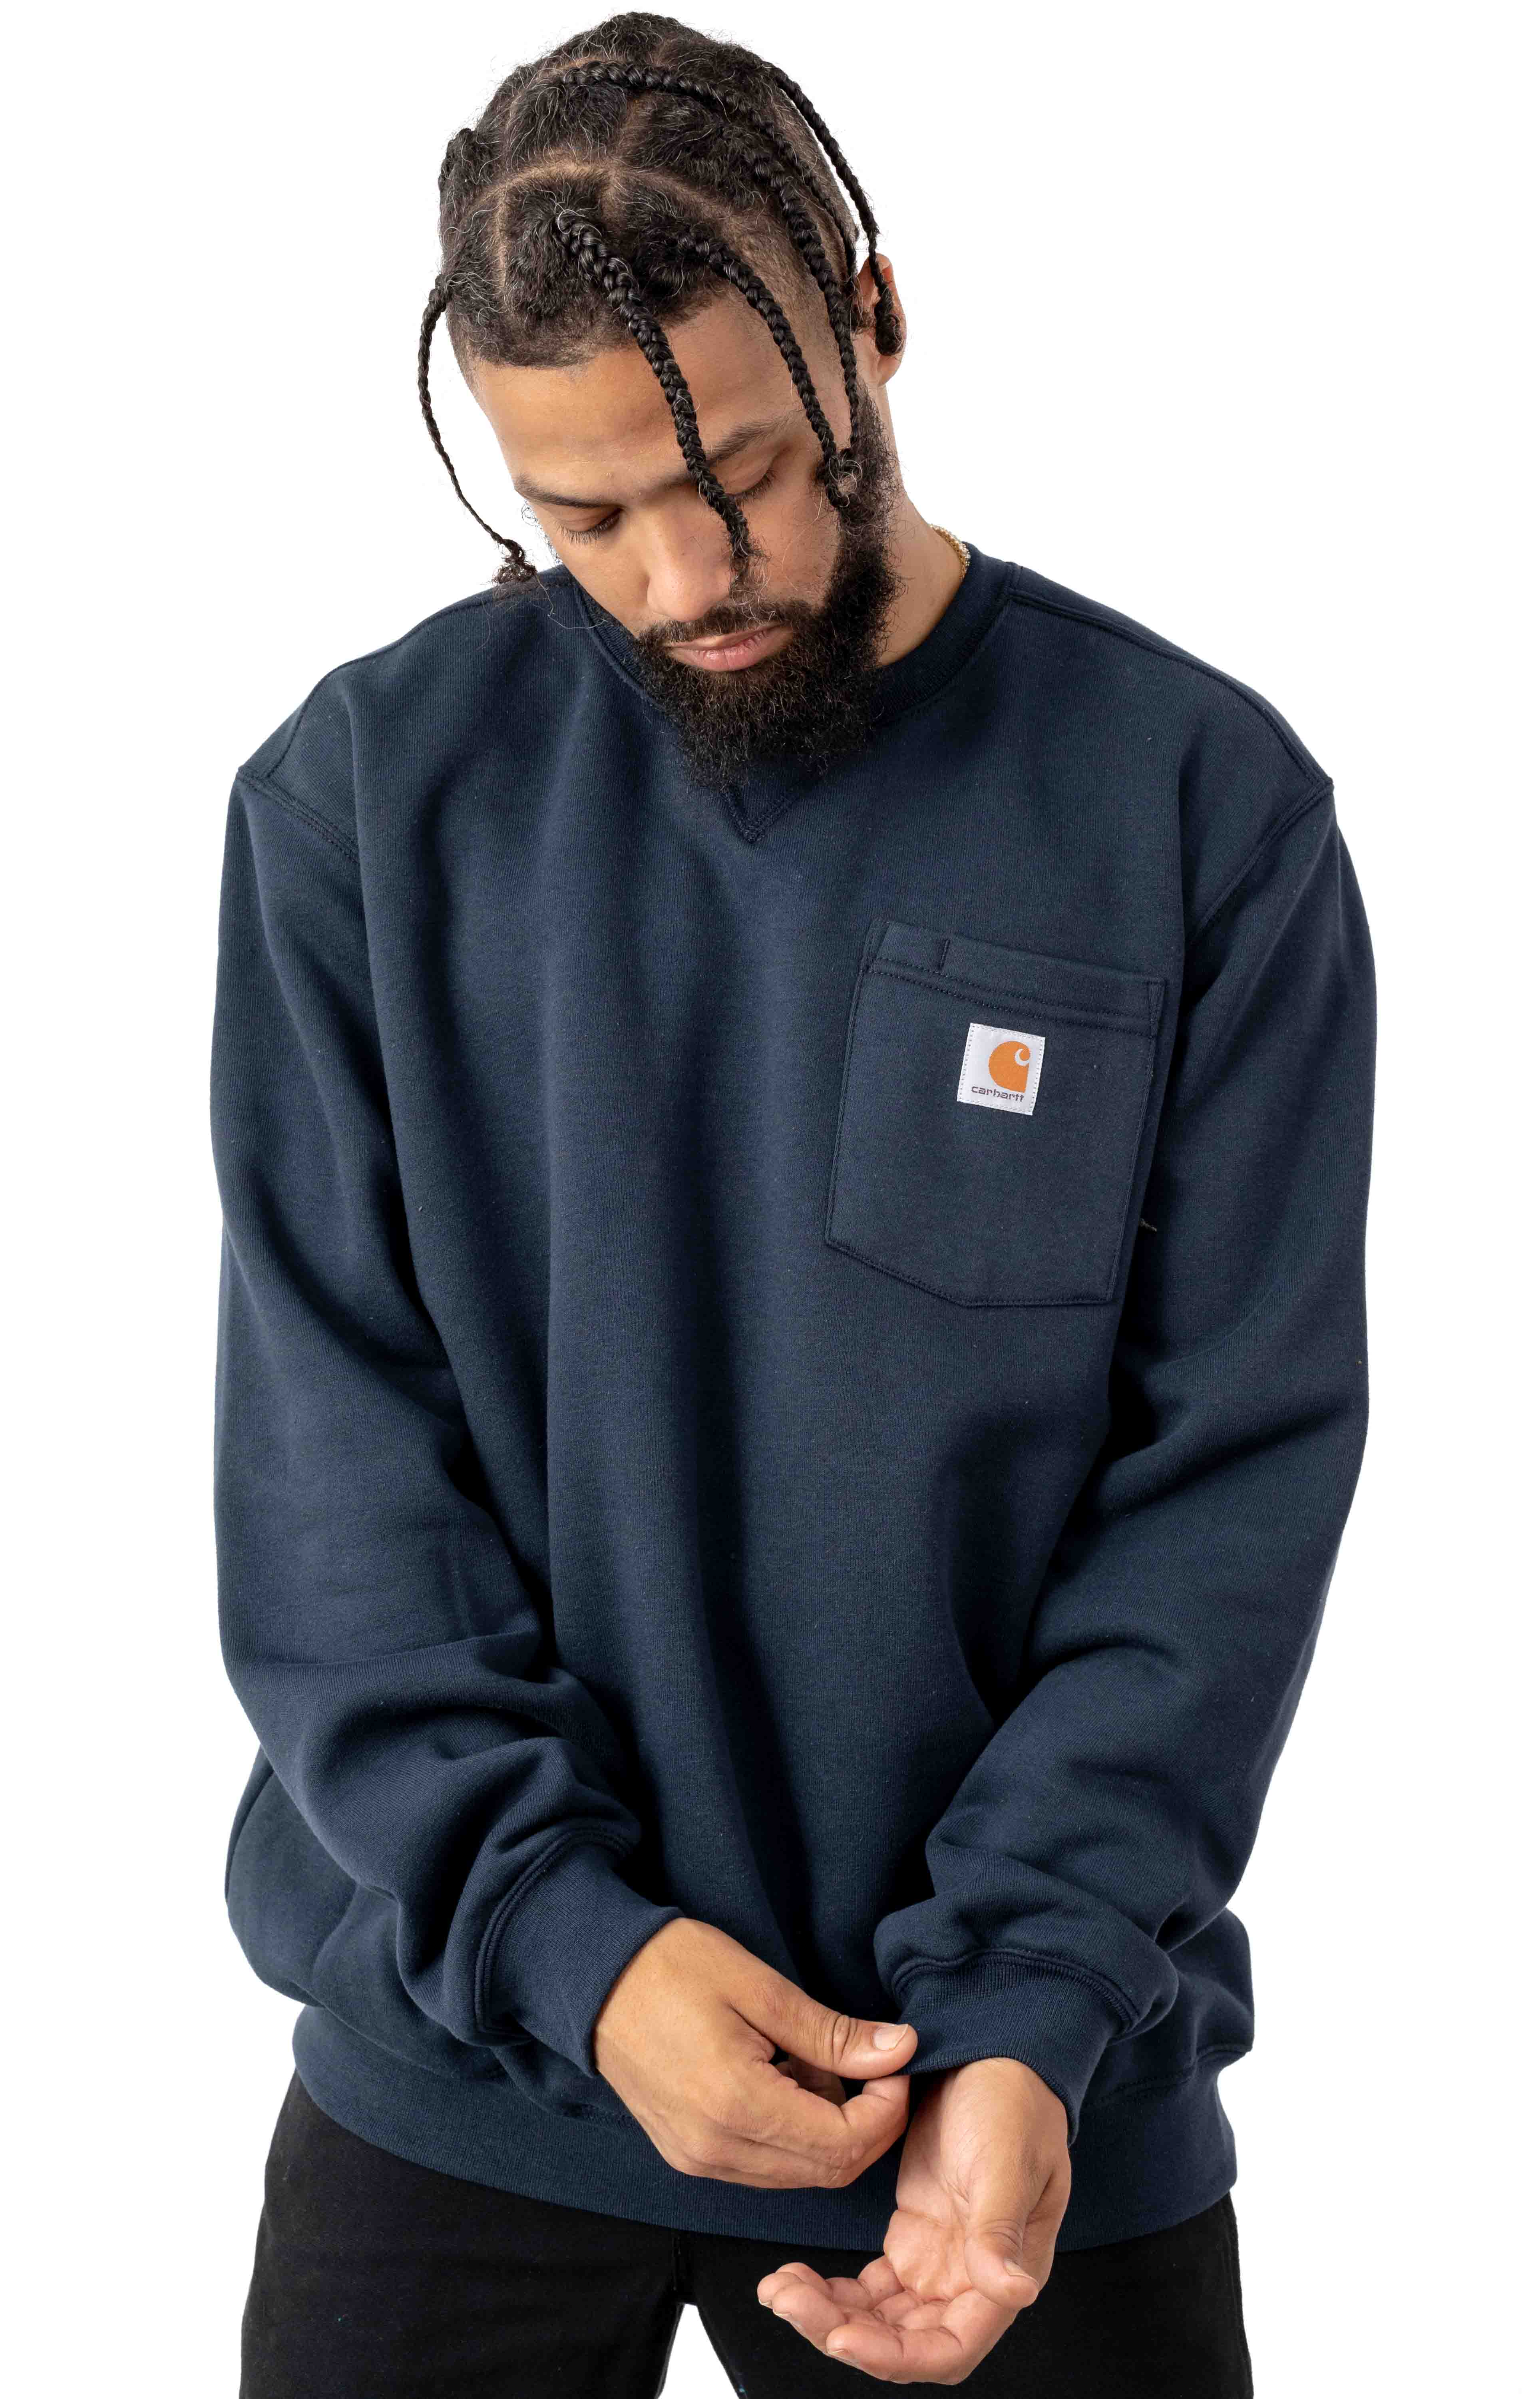 (103852) Crewneck Pocket Sweatshirt - New Navy